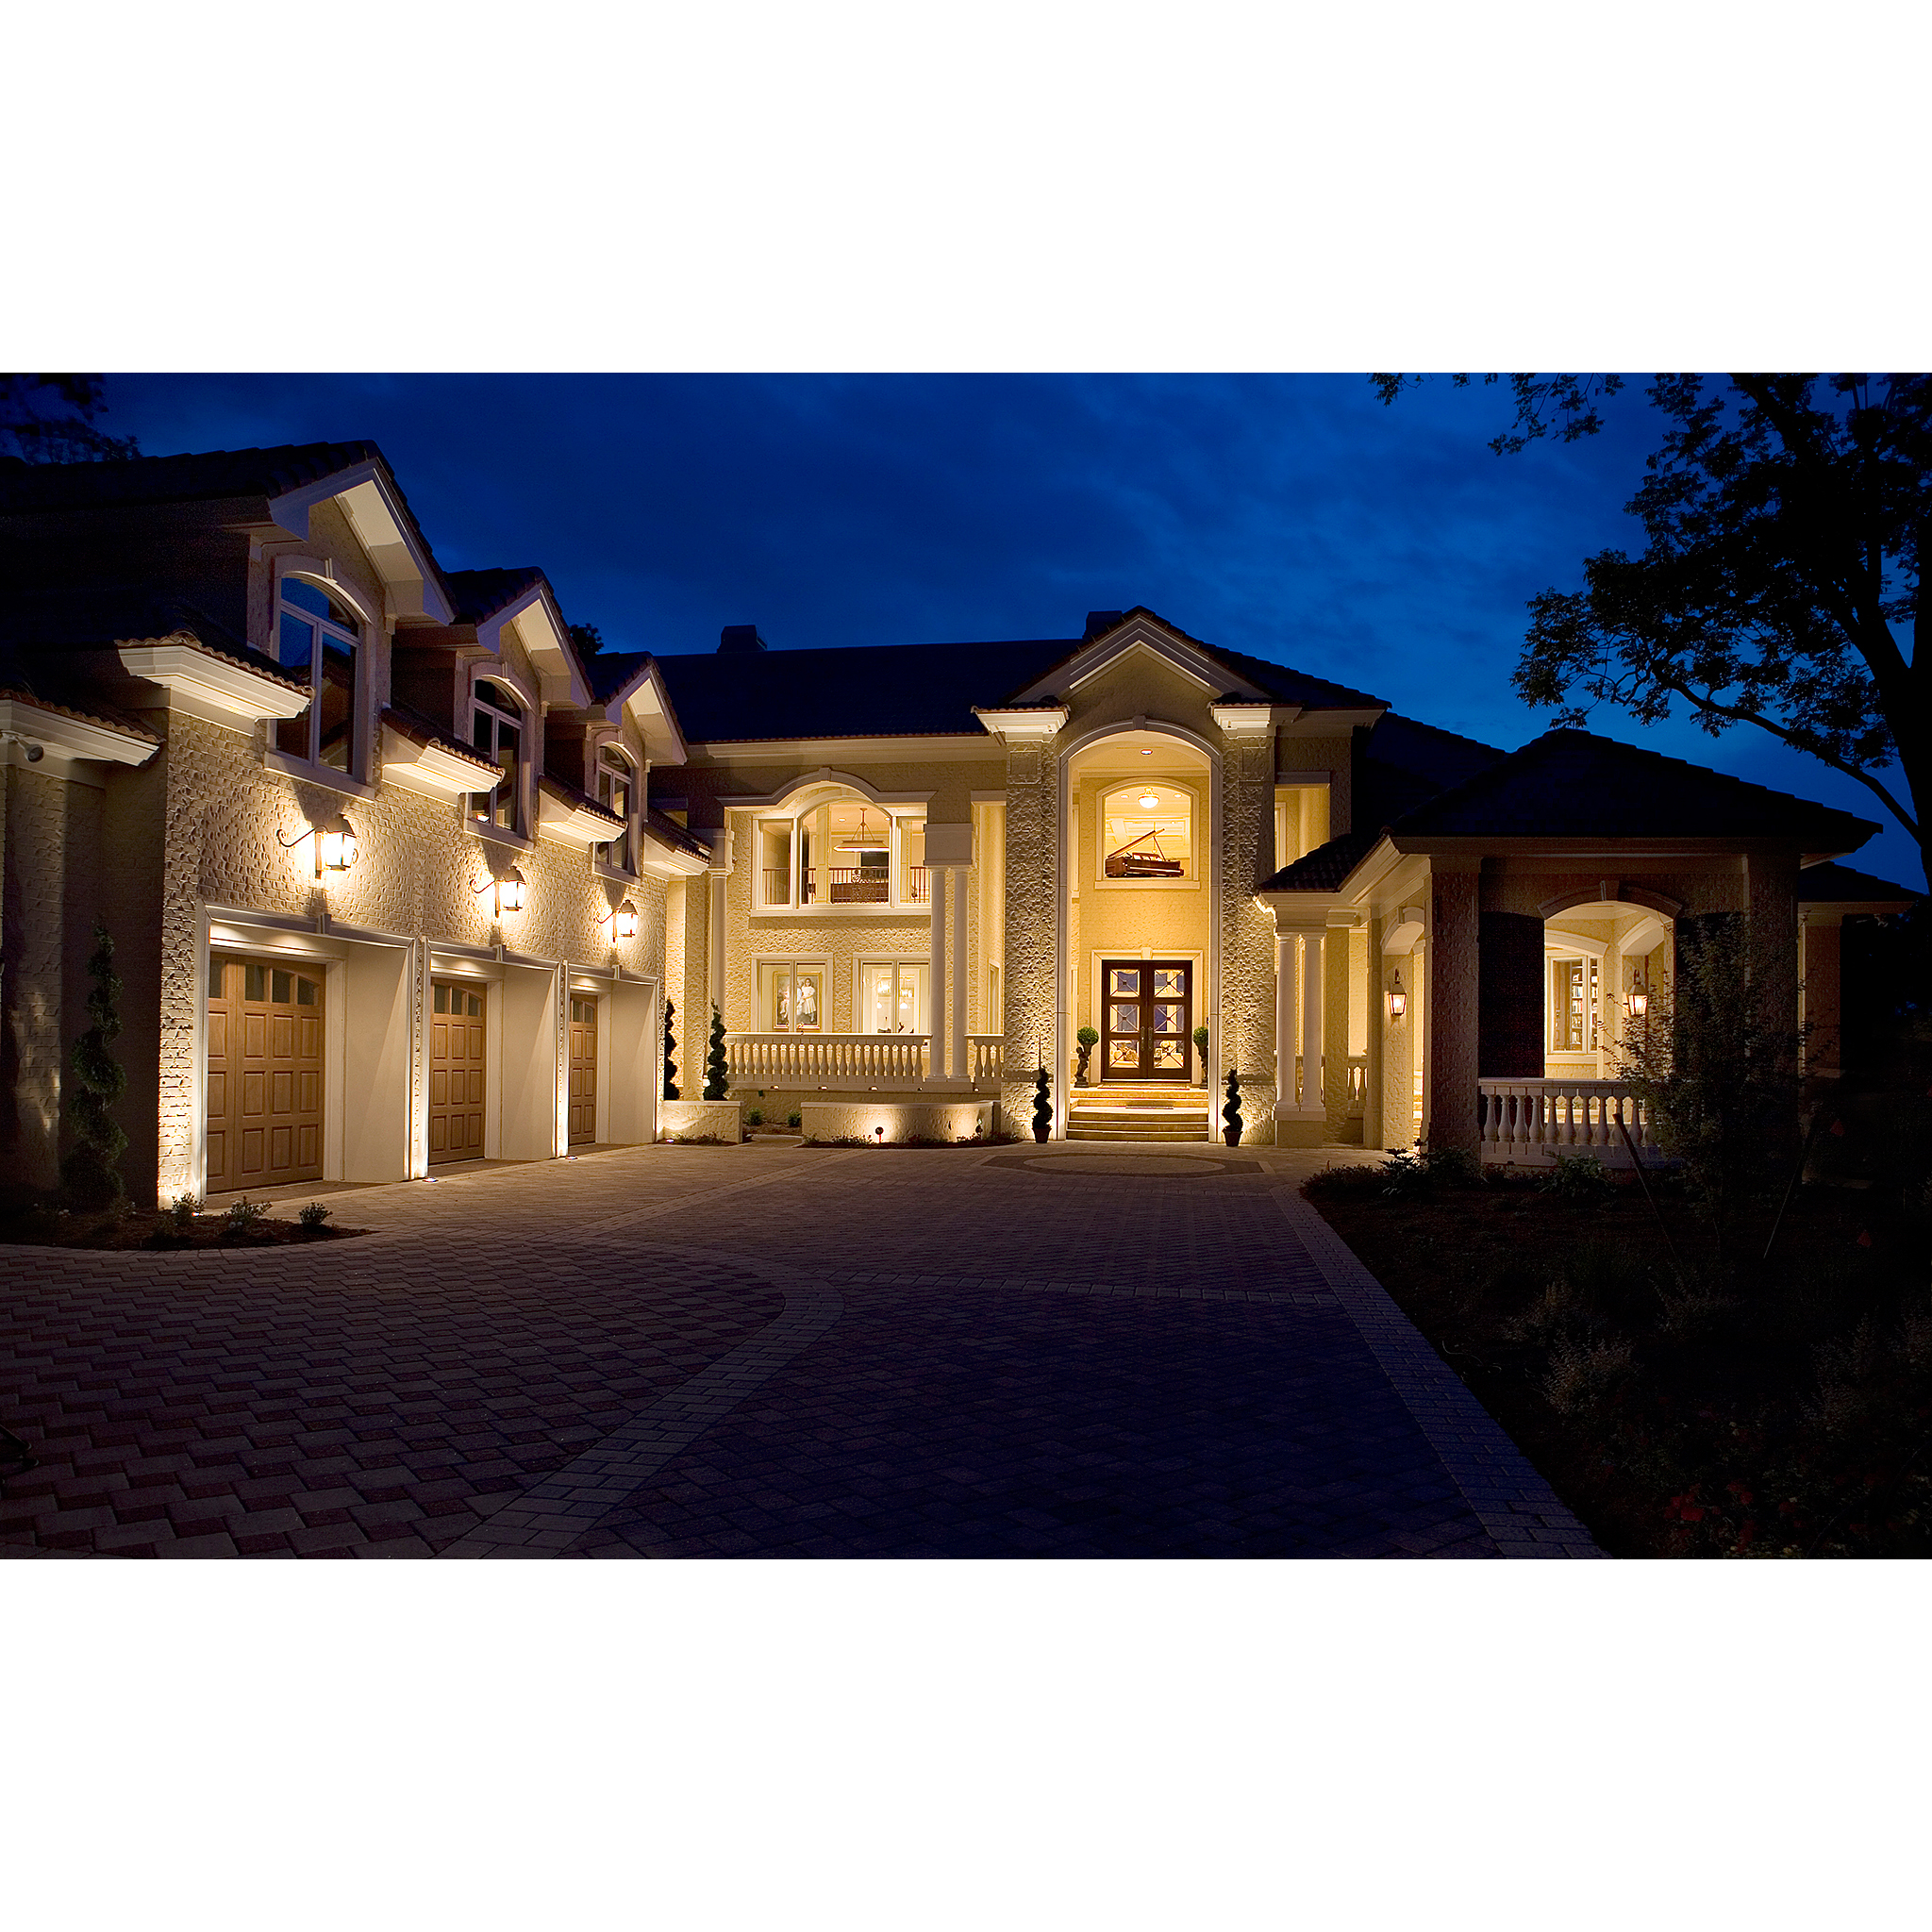 Architecture photo of house at night with lights in Virginia Beach Virginia